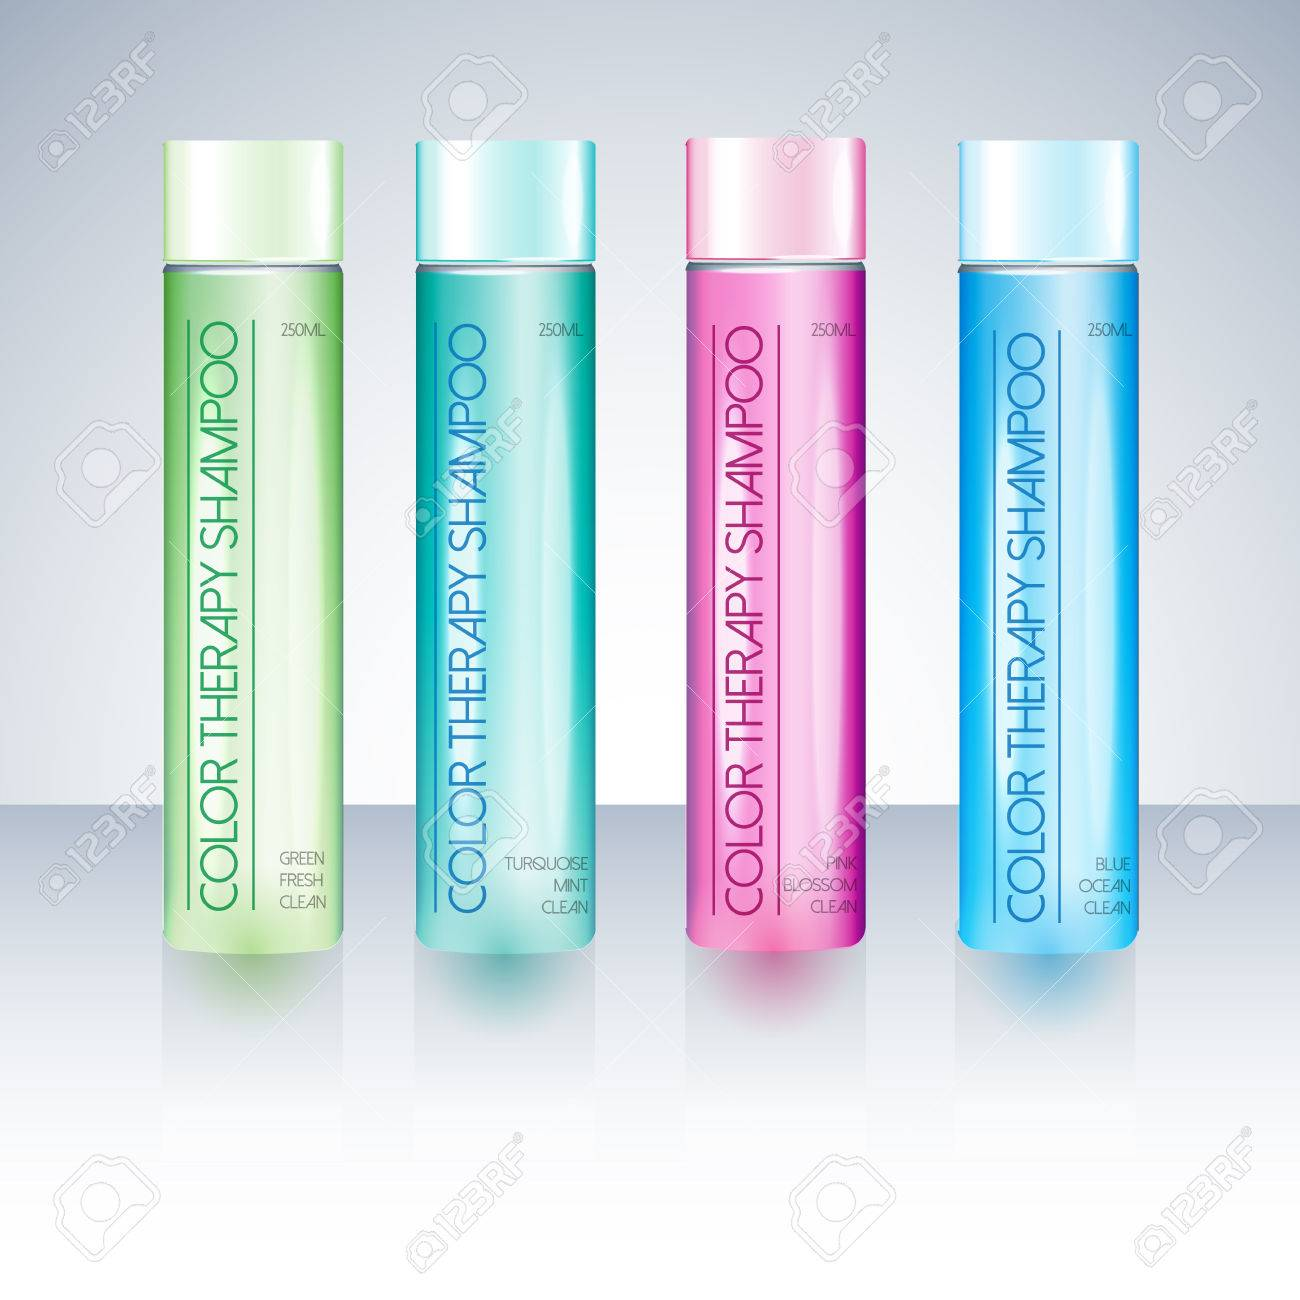 Beauty Cosmetic Packaging Design Templates Body Care Shampoo.. Stock ...